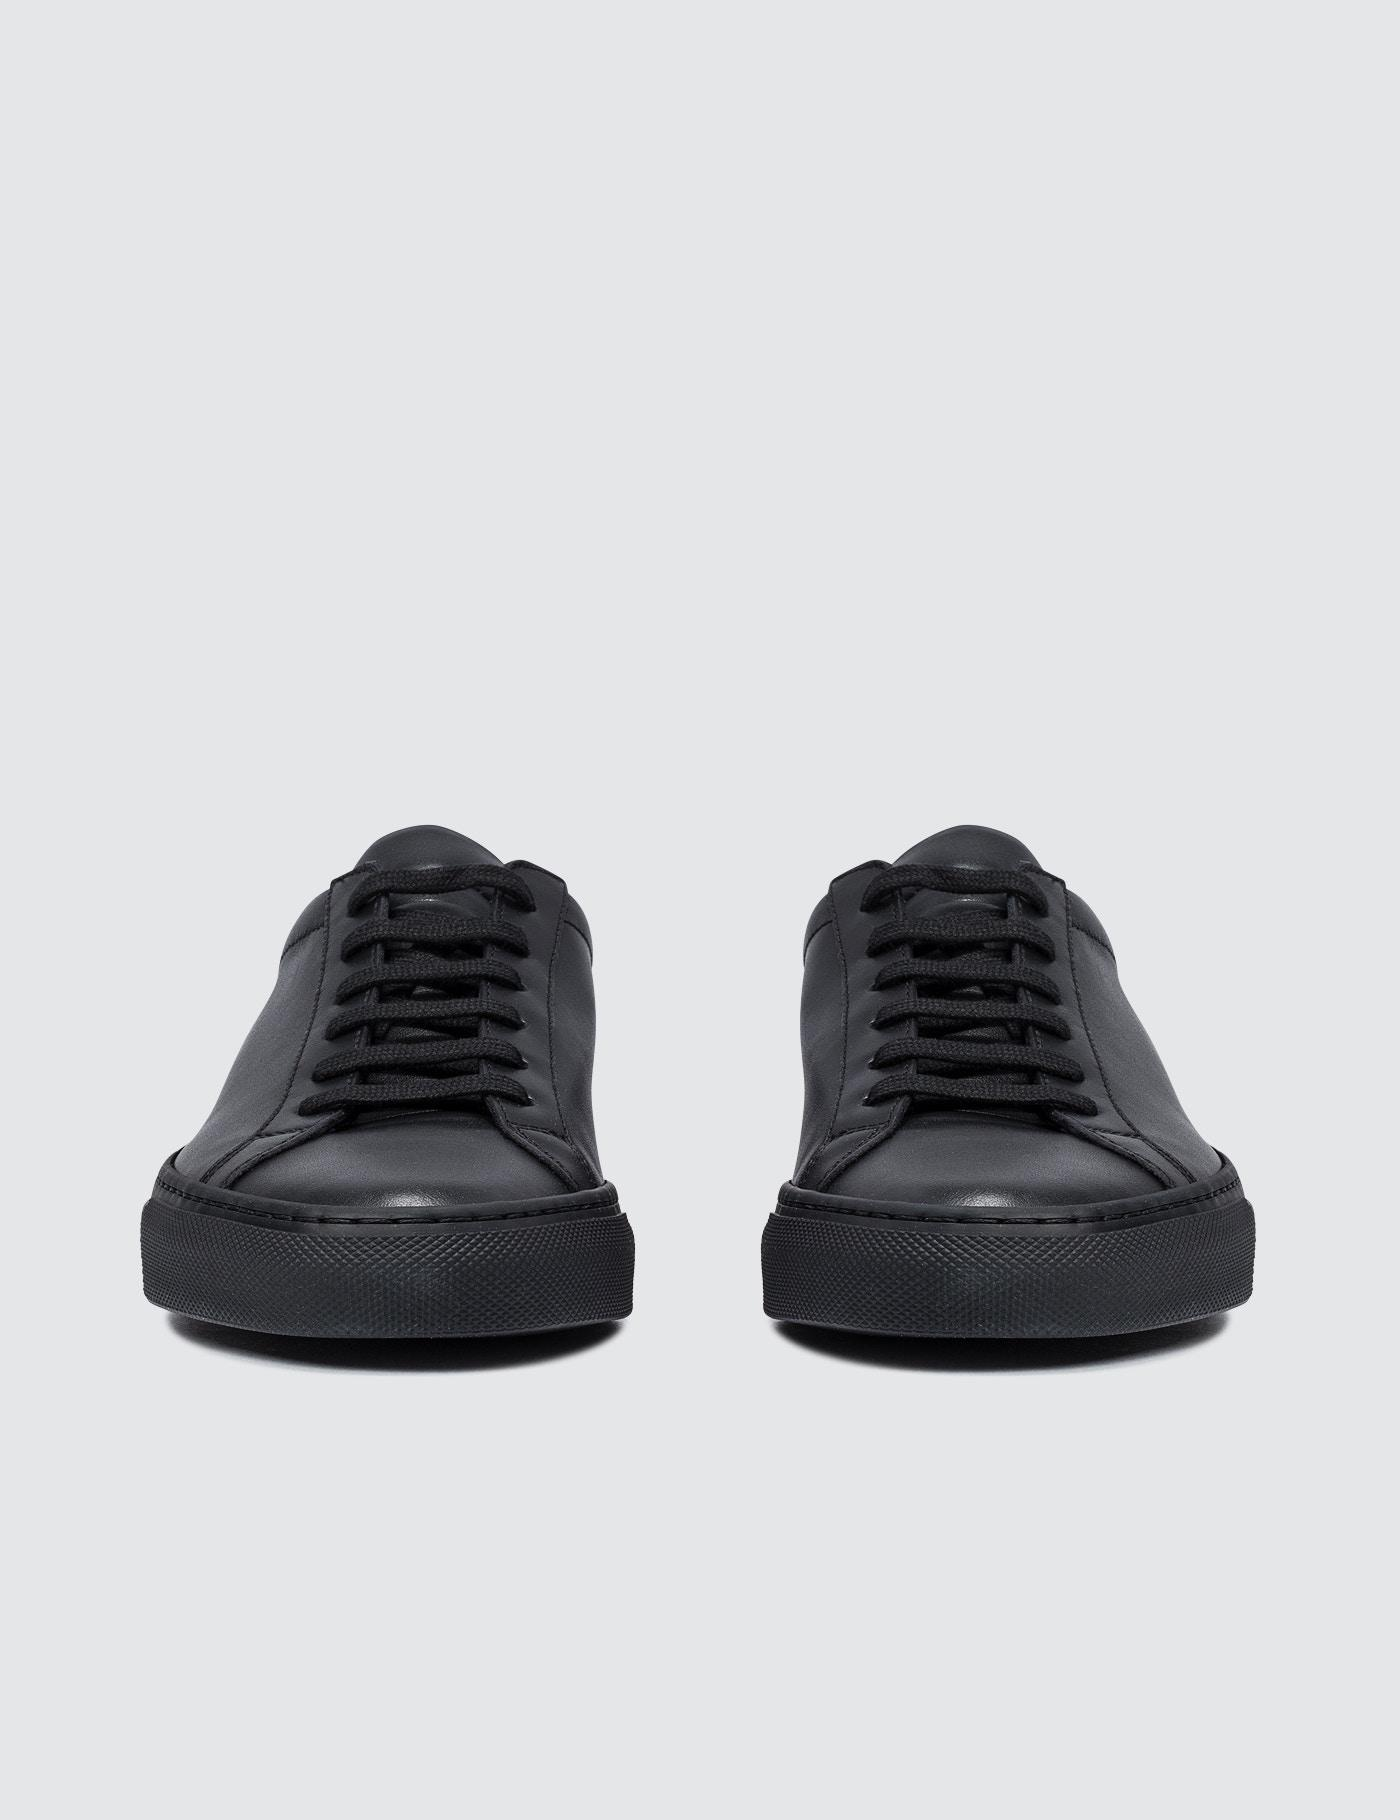 1fc444aac023 Lyst - Common Projects Original Leather Achilles Low in Black